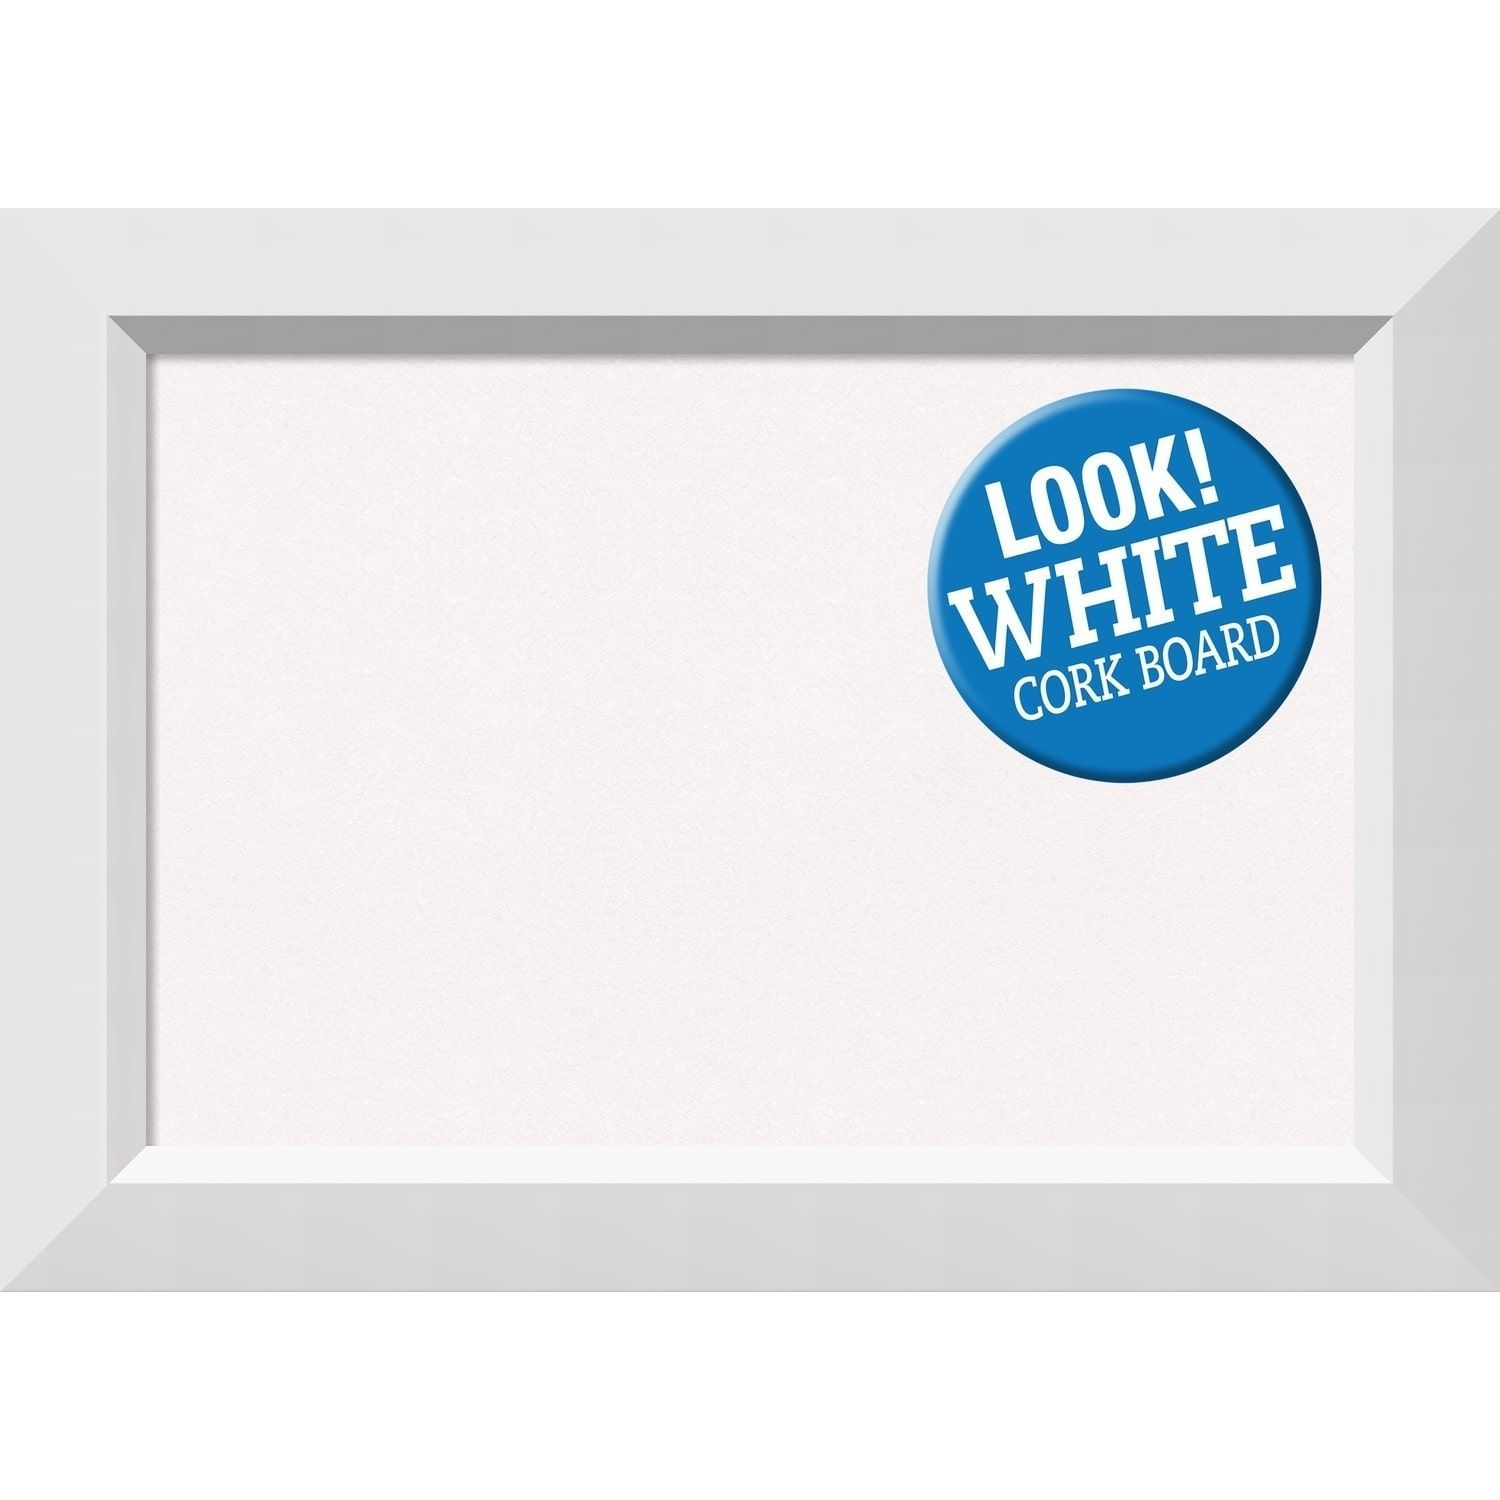 Amanti Art Framed White Cork Board, Blanco White (Small